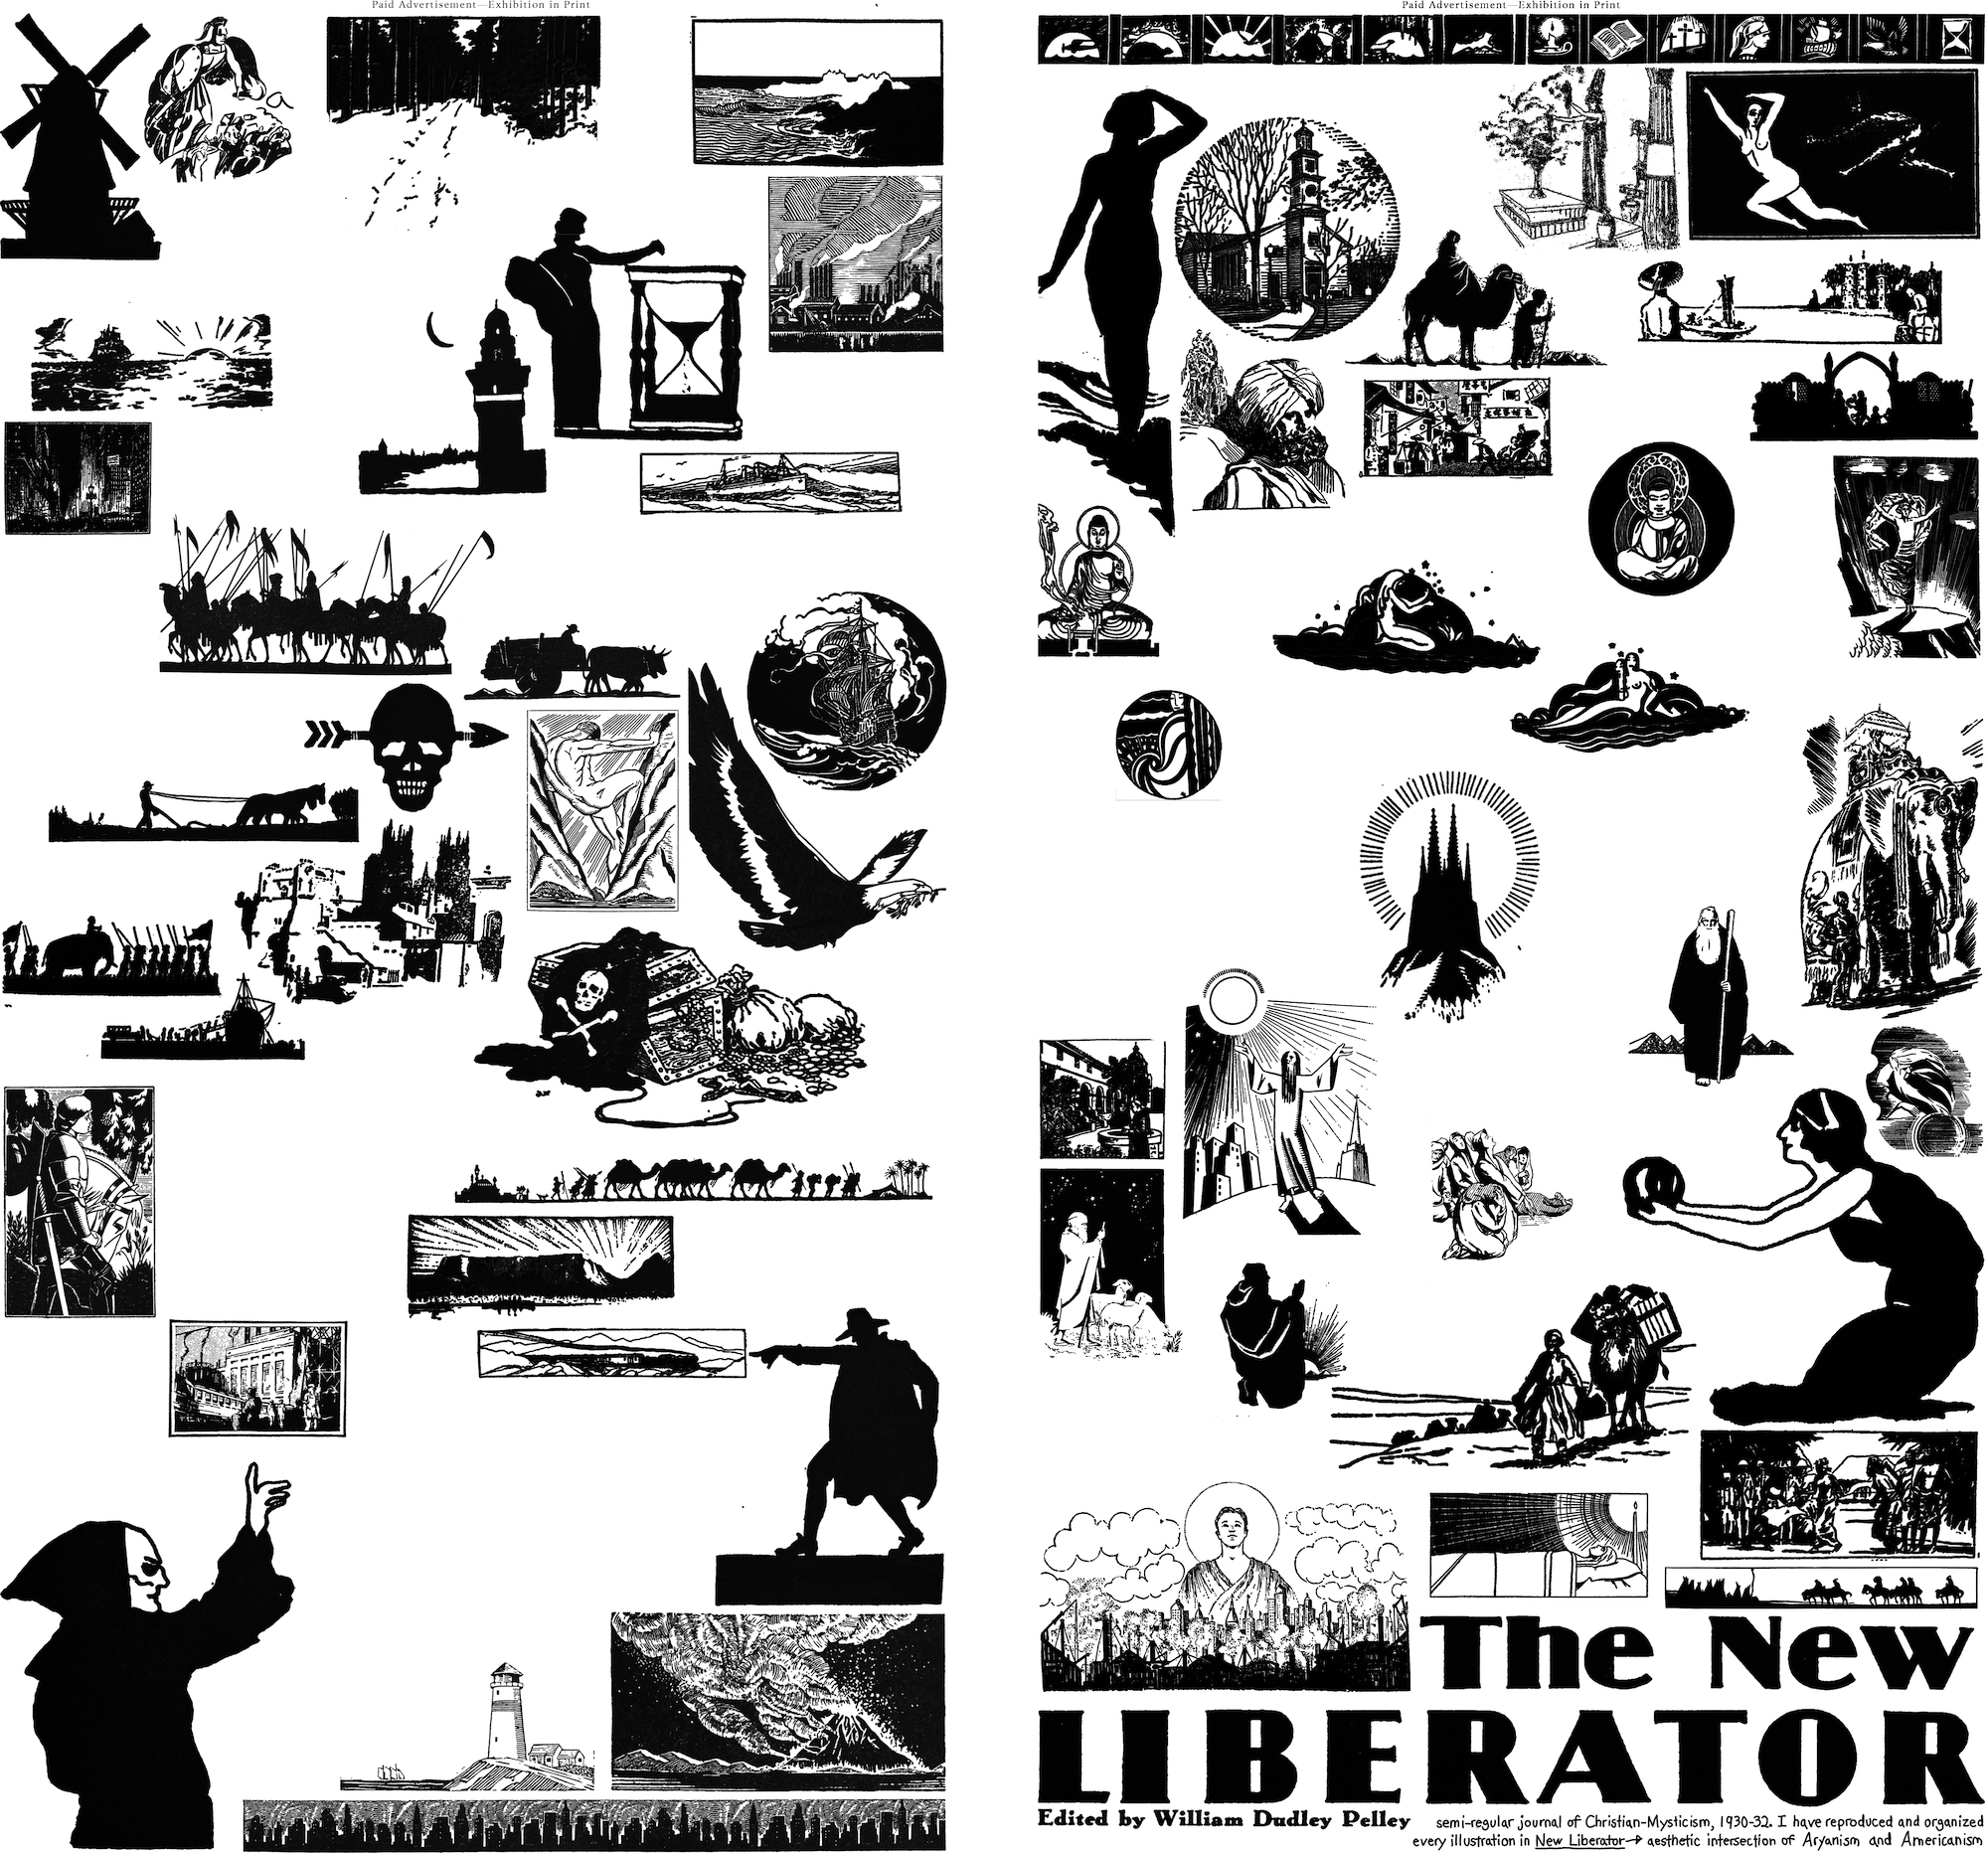 the New Liberator heading appears in the bottom right corner of the collage. The rest of the image contains simple black and white illustrations of landscapes, armies, cities, scenes from the Bible, nude women, shepherds, and ships among others.